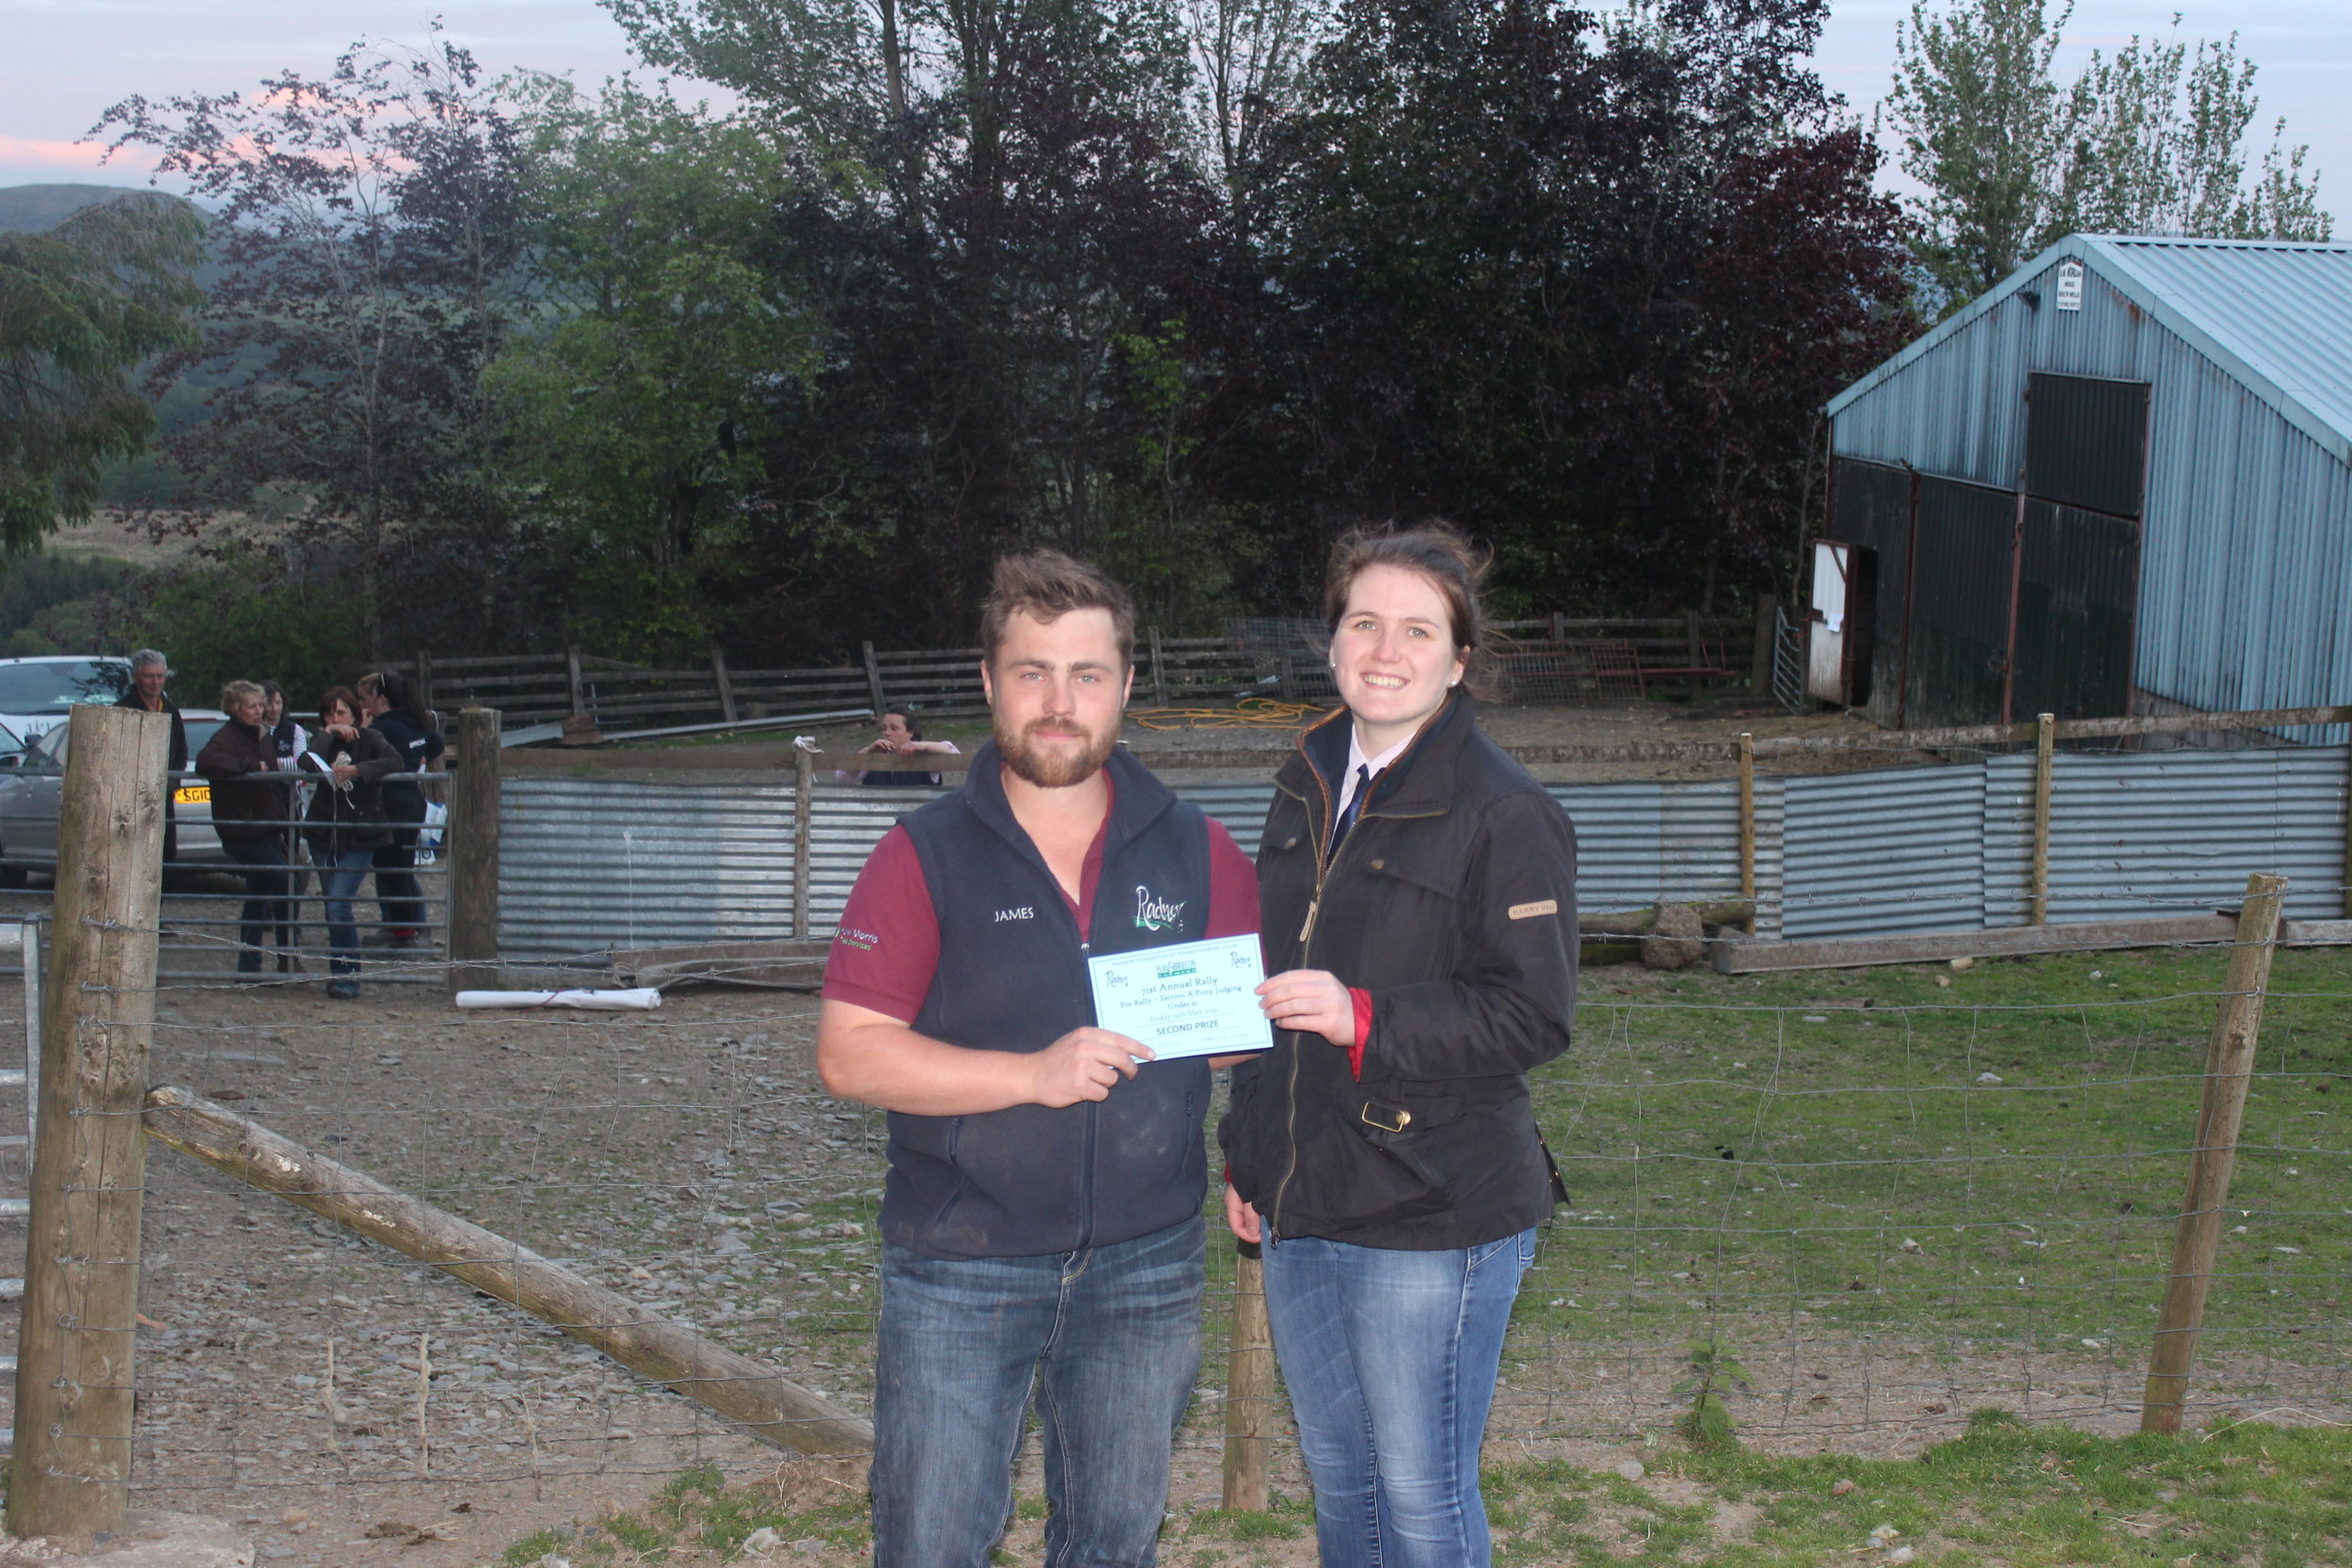 Ella Harris, Teme Valley YFC - 2nd place in the Under 21 Section A Stockjudging with County Chairman James Poulton.